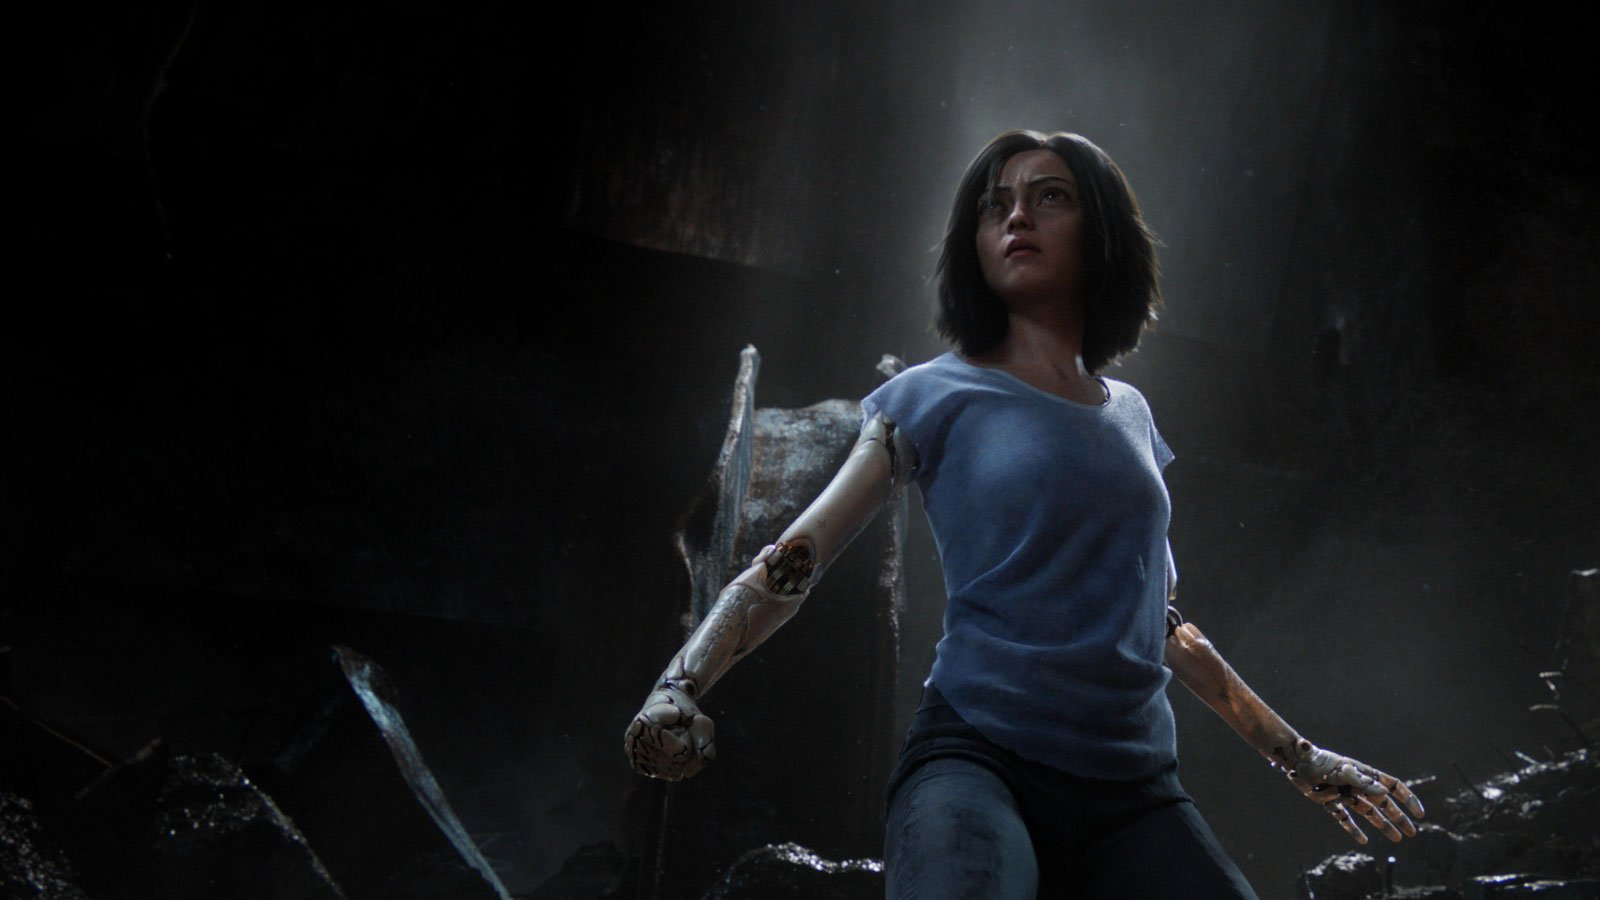 Alita: Battle Angel Review - OC Movie Reviews - Movie Reviews, Movie News, Documentary Reviews, Short Films, Short Film Reviews, Trailers, Movie Trailers, Interviews, film reviews, film news, hollywood, indie films, documentaries, TV shows